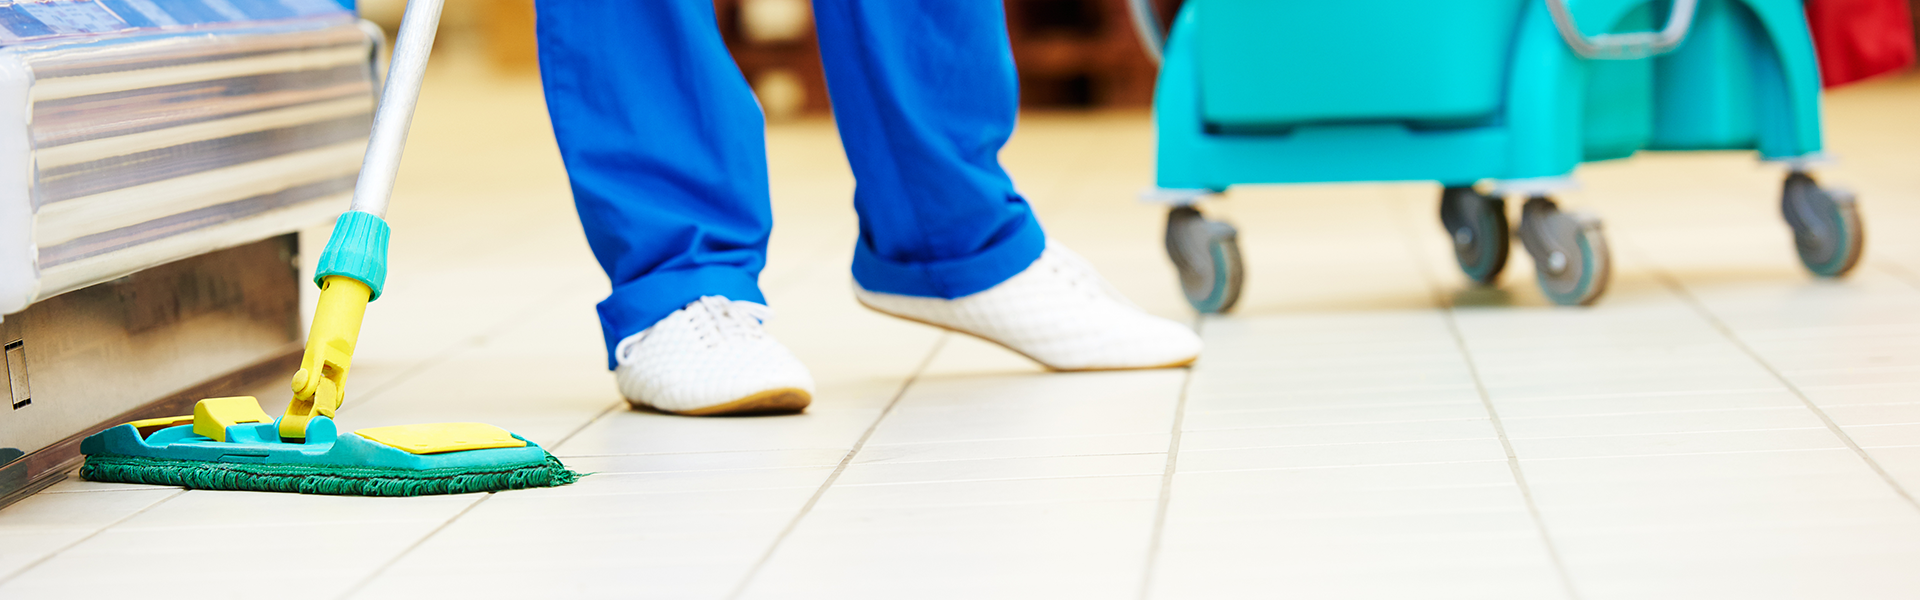 A cleaning person using a mop to clean a commercial floor.